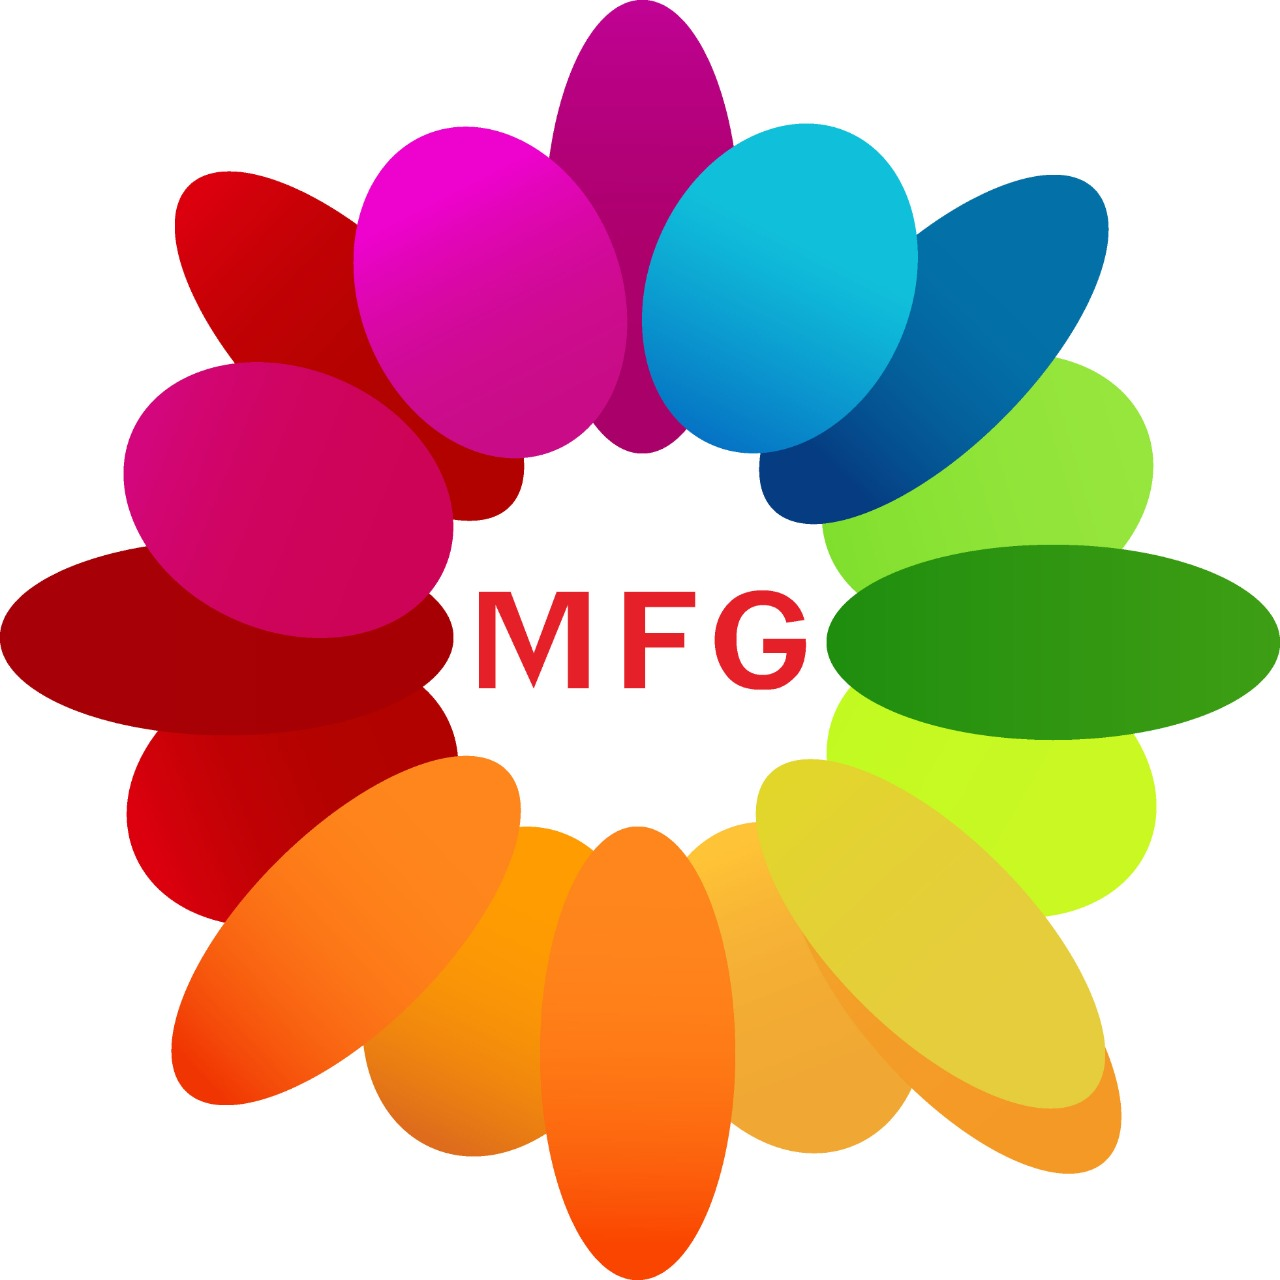 Sweet memories ... A cute 1 feet height teddy with of 6 roses